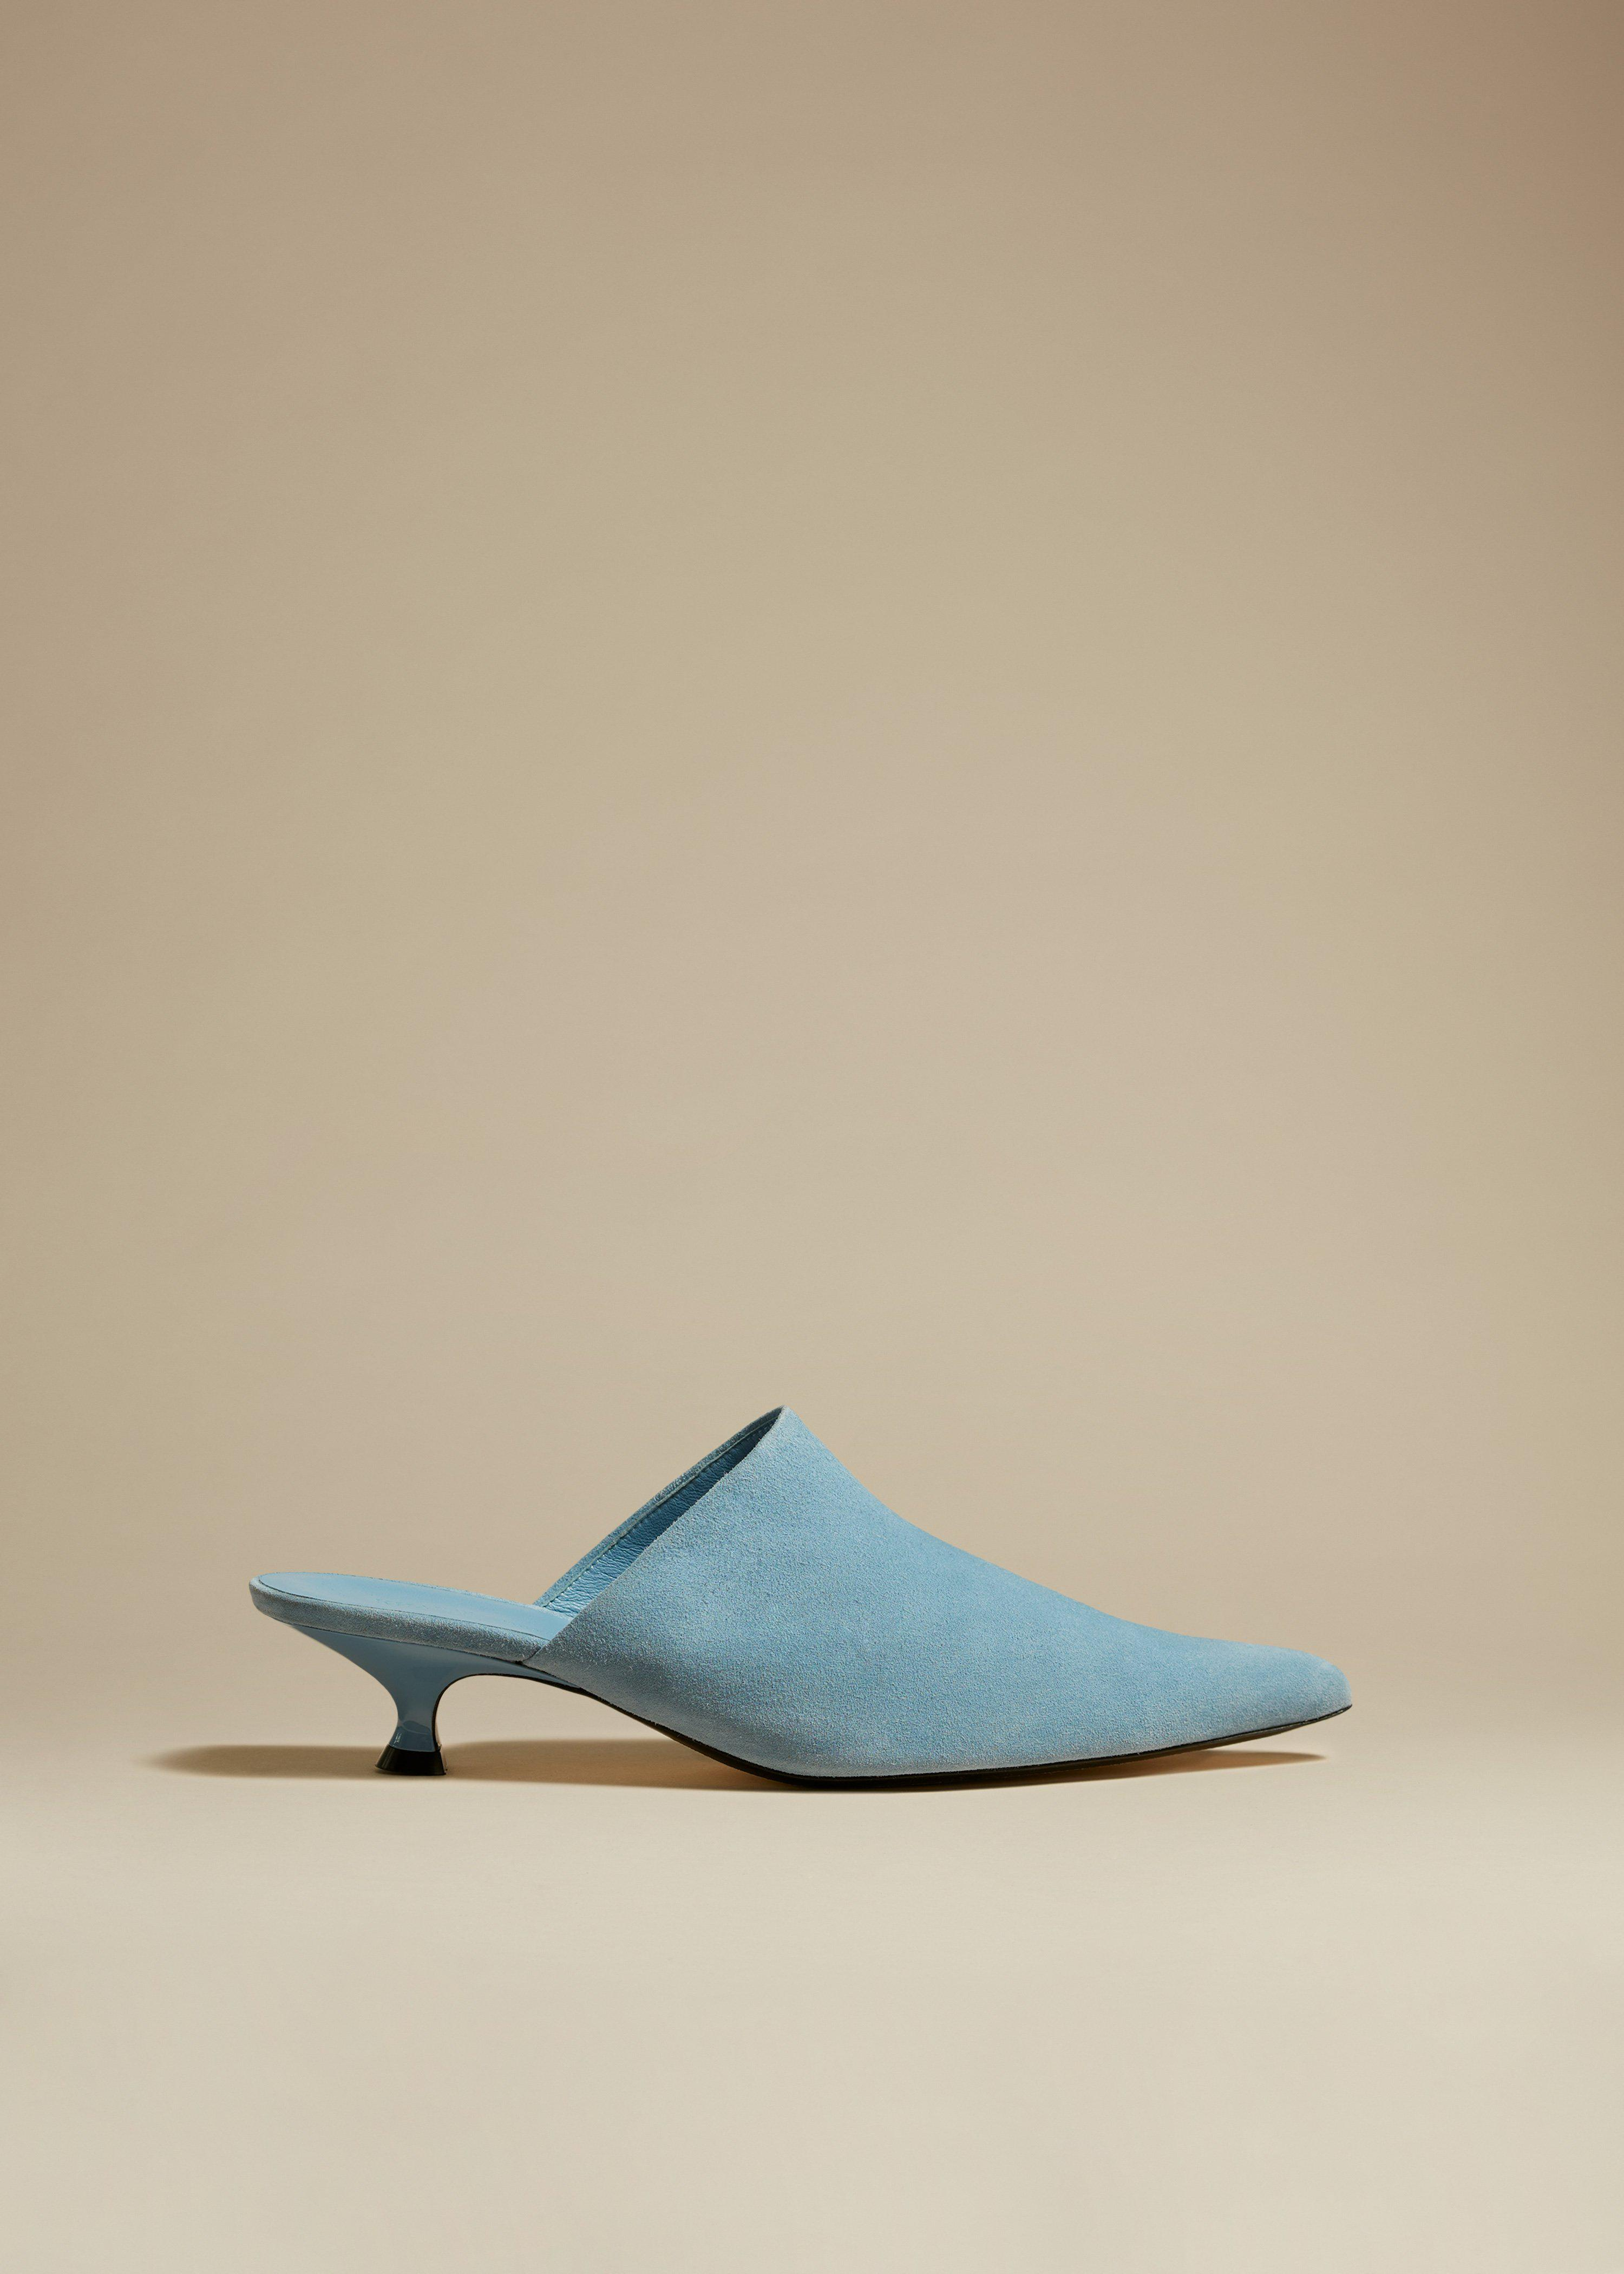 The Volosa Mule in Atmosphere Suede